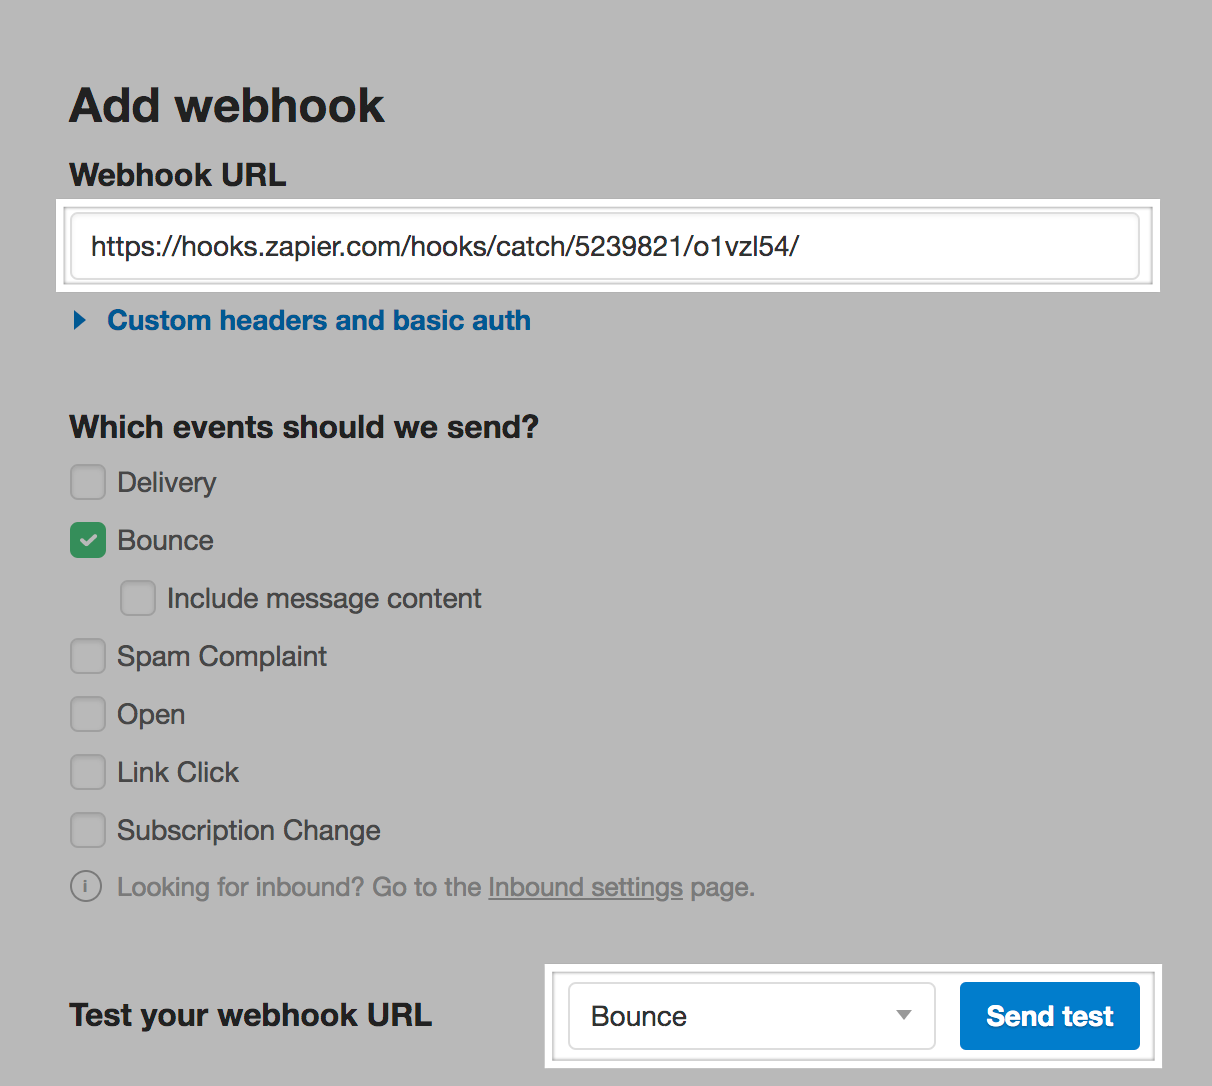 Paste the URL into the Webhook URL field